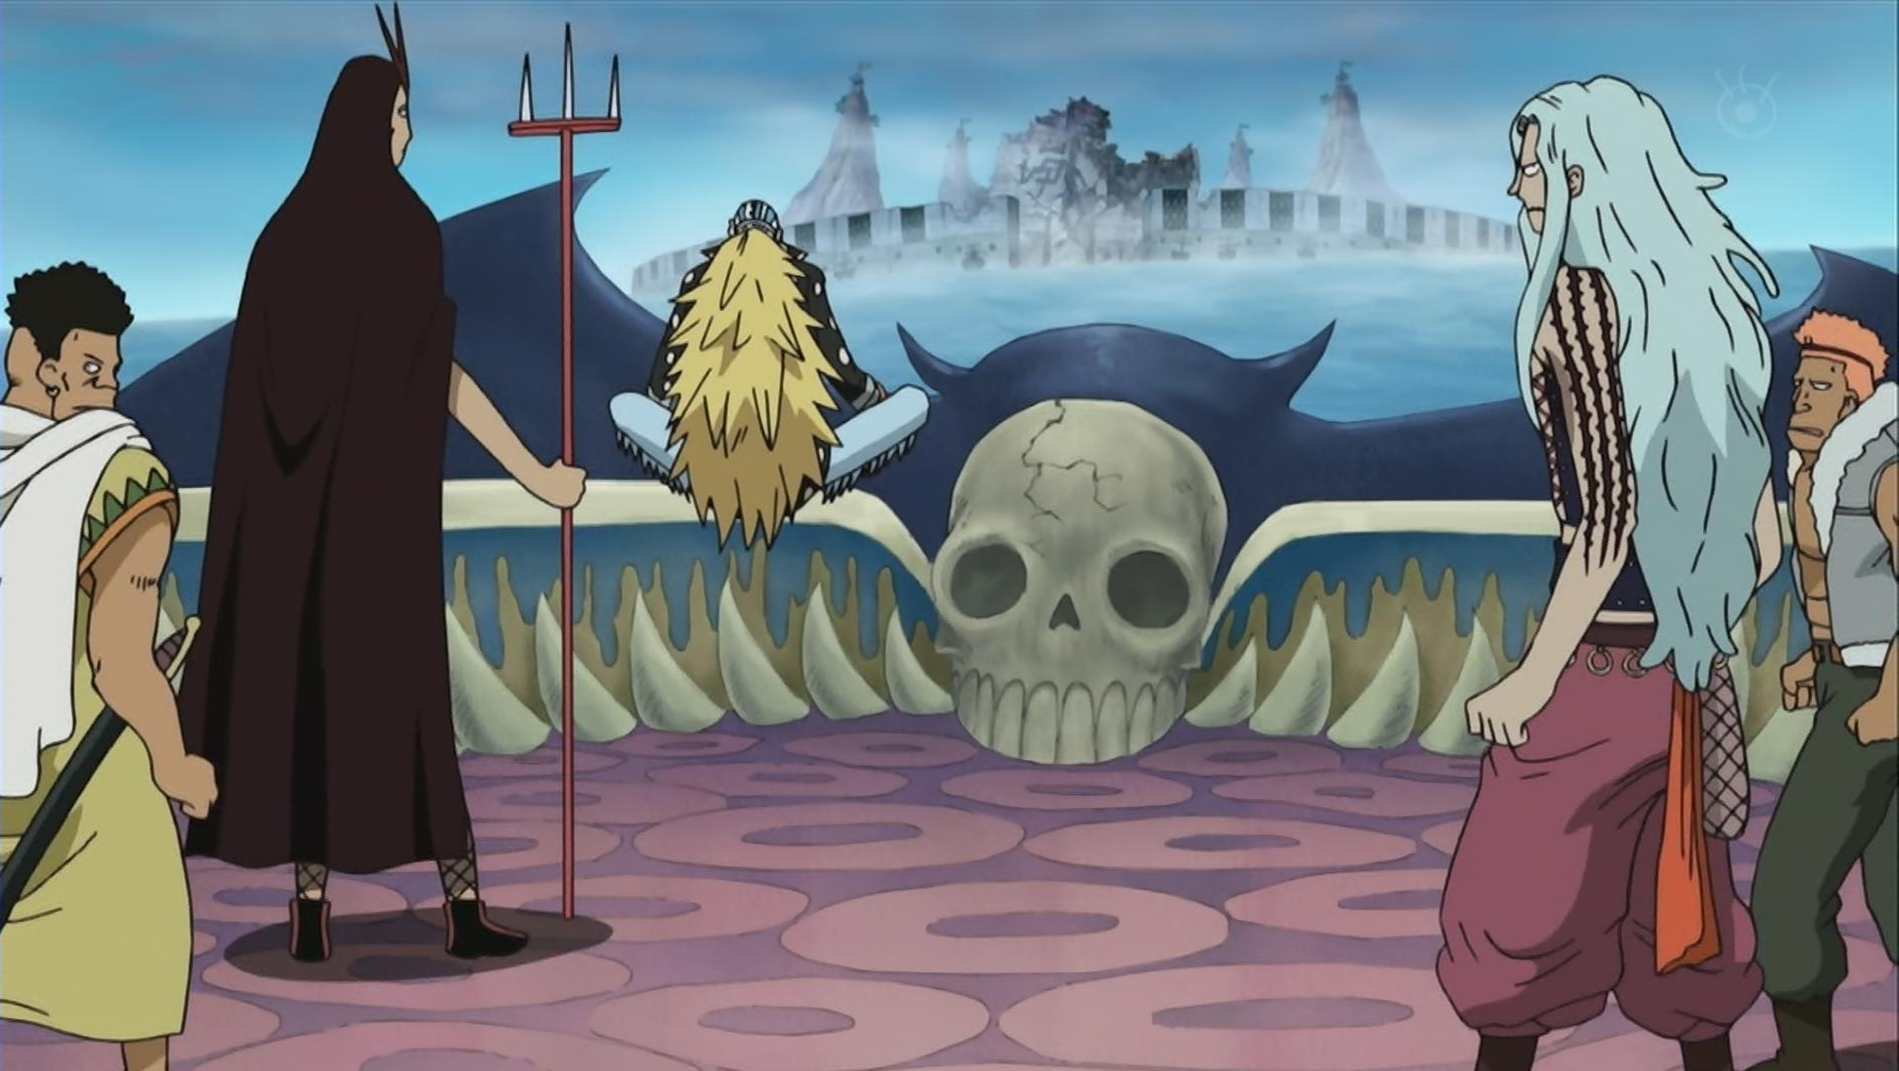 http://images.wikia.com/onepiece/images/5/50/Kid_Pirates_deck.png